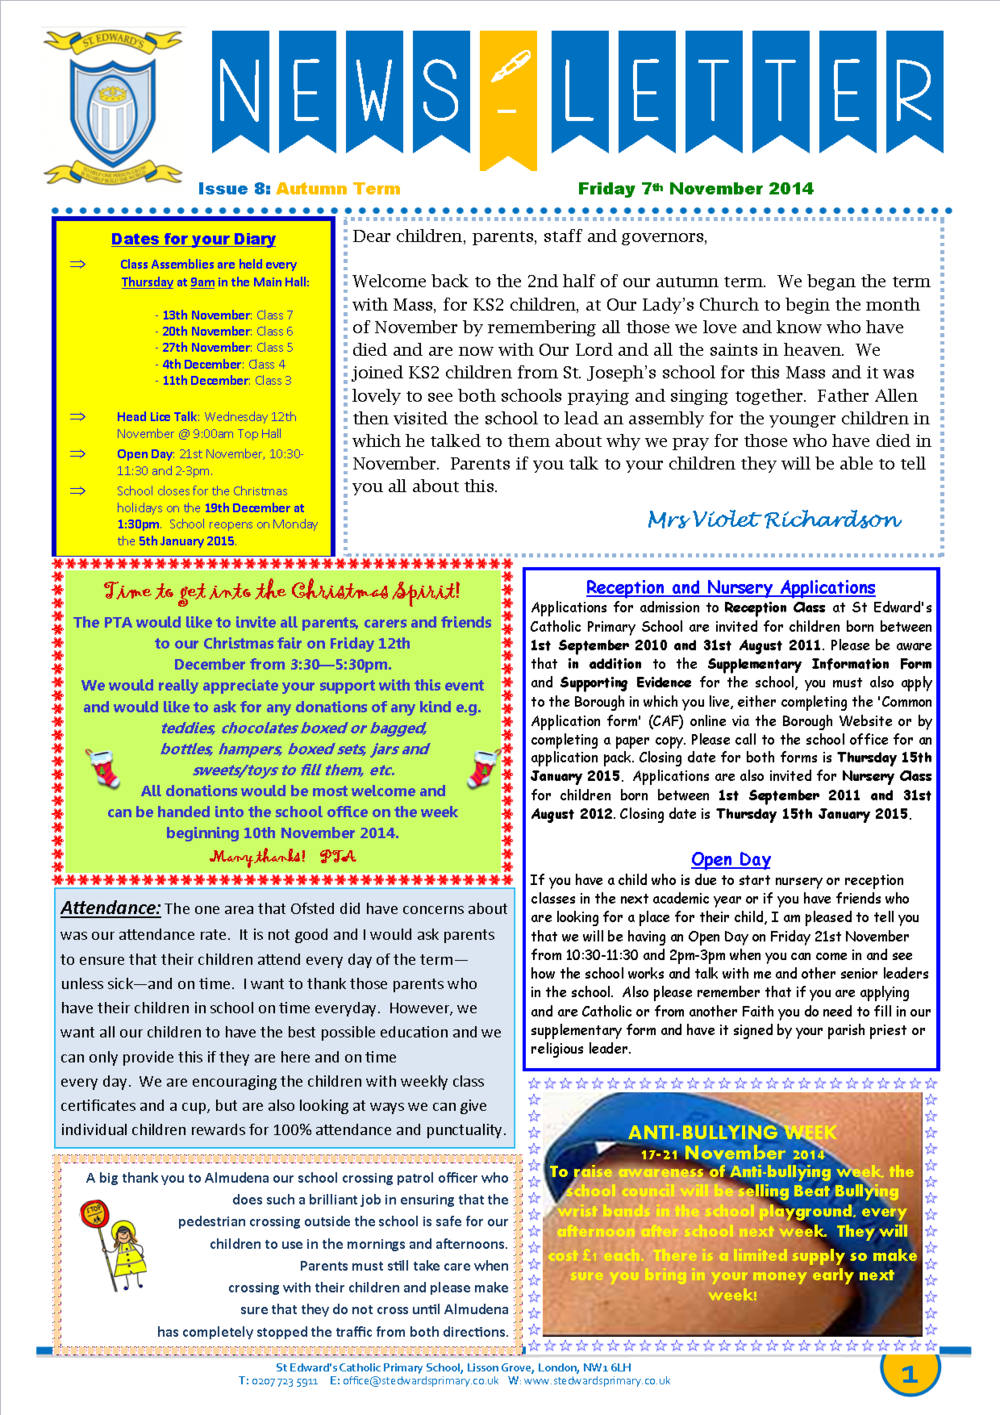 1St Edward's Newsletter Issue 8 7 November 2014.png